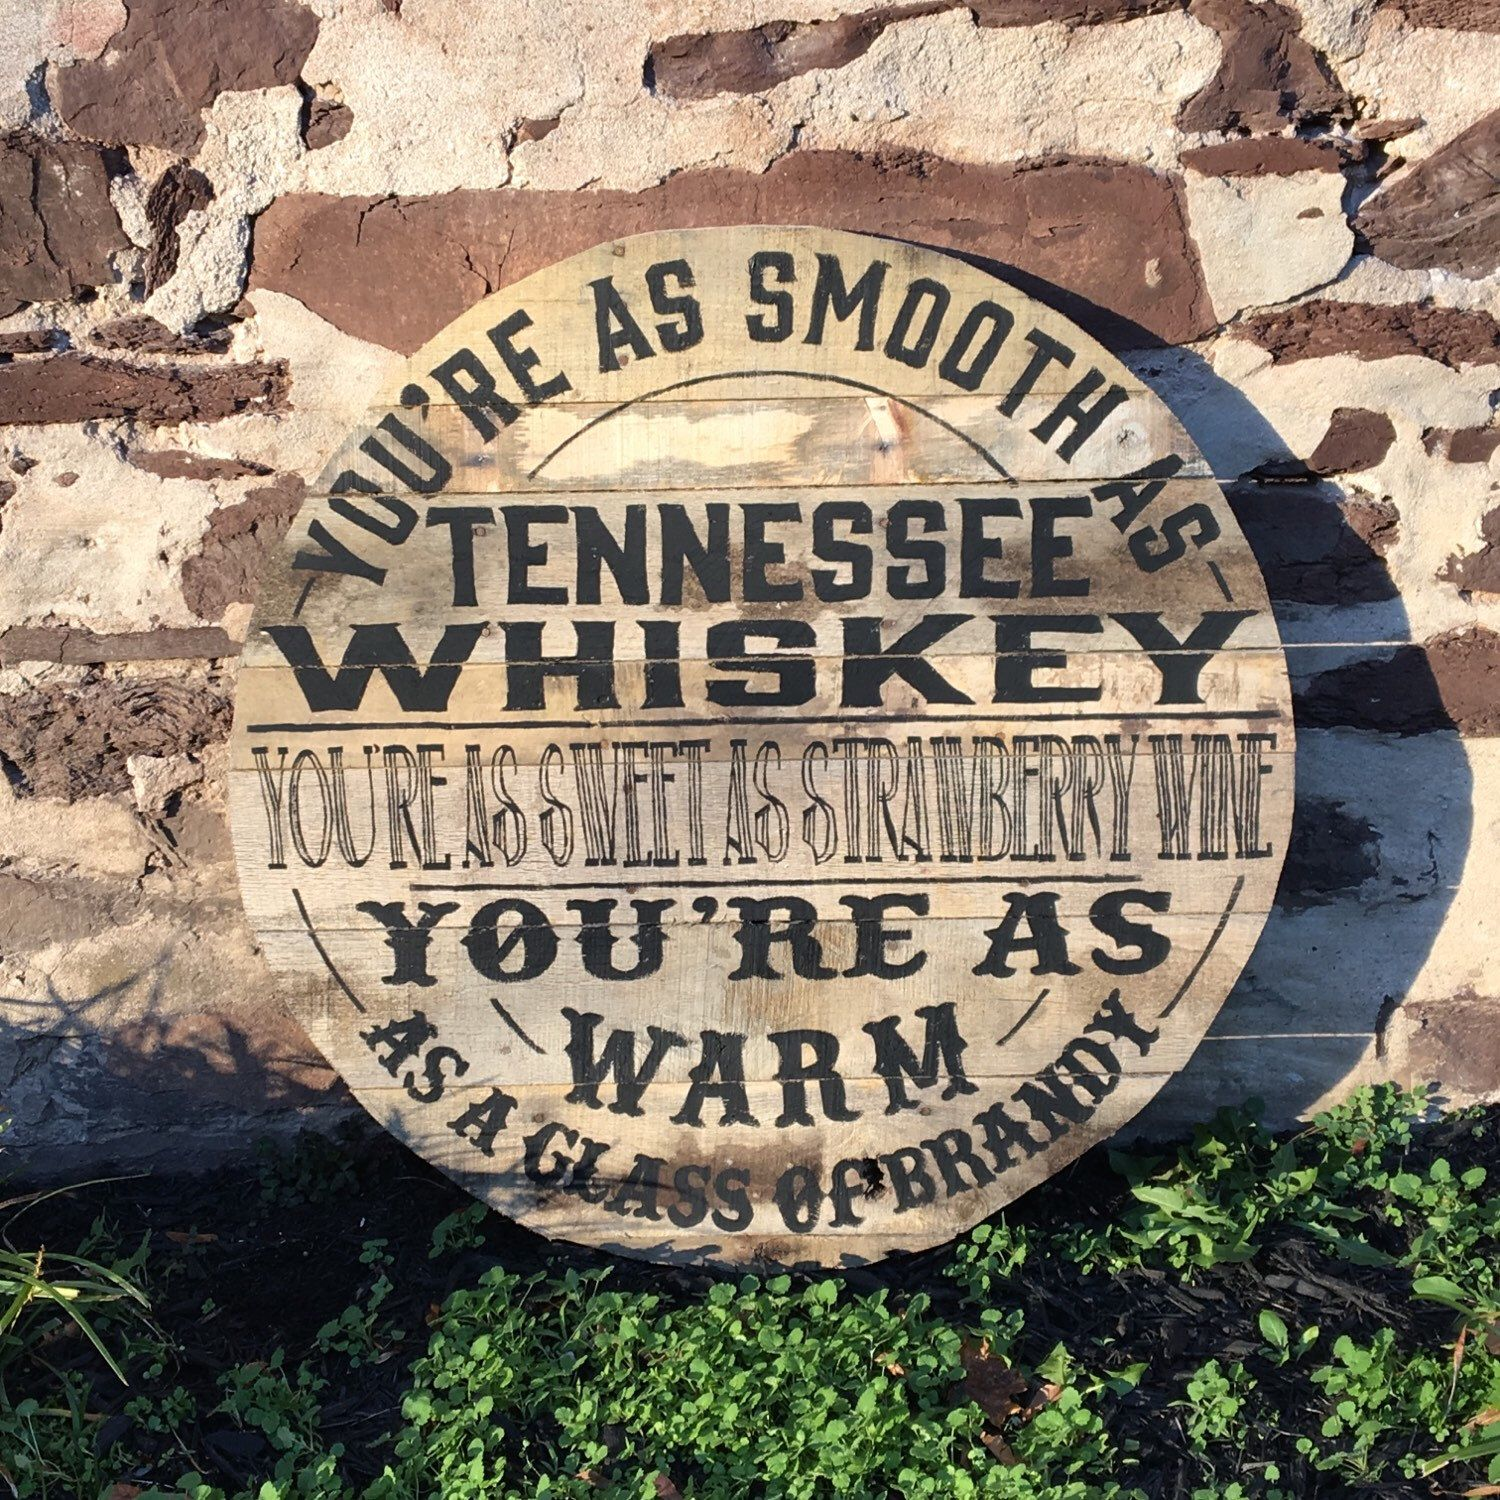 Large Tennessee Whiskey Bar Sign Lyrics Of George Jones And Chris Stapletons 3 Ft In Diameter Can Be Made Smaller If Needed